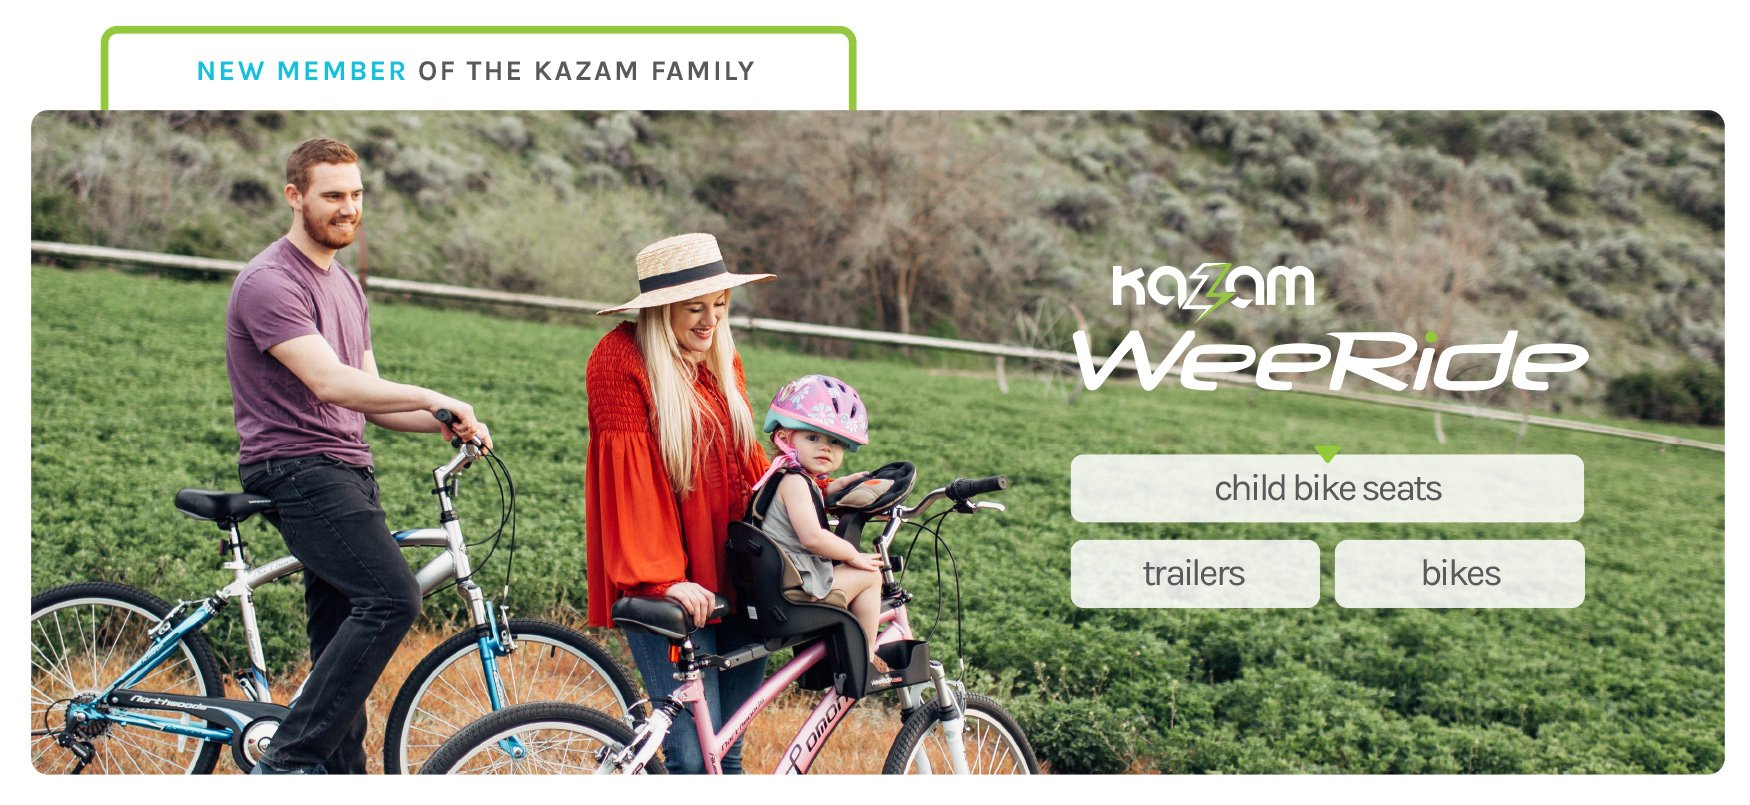 New Member of the Kazam Family - WeeRide by Kazam - Child Bike Seats, Trailers, and Bikes